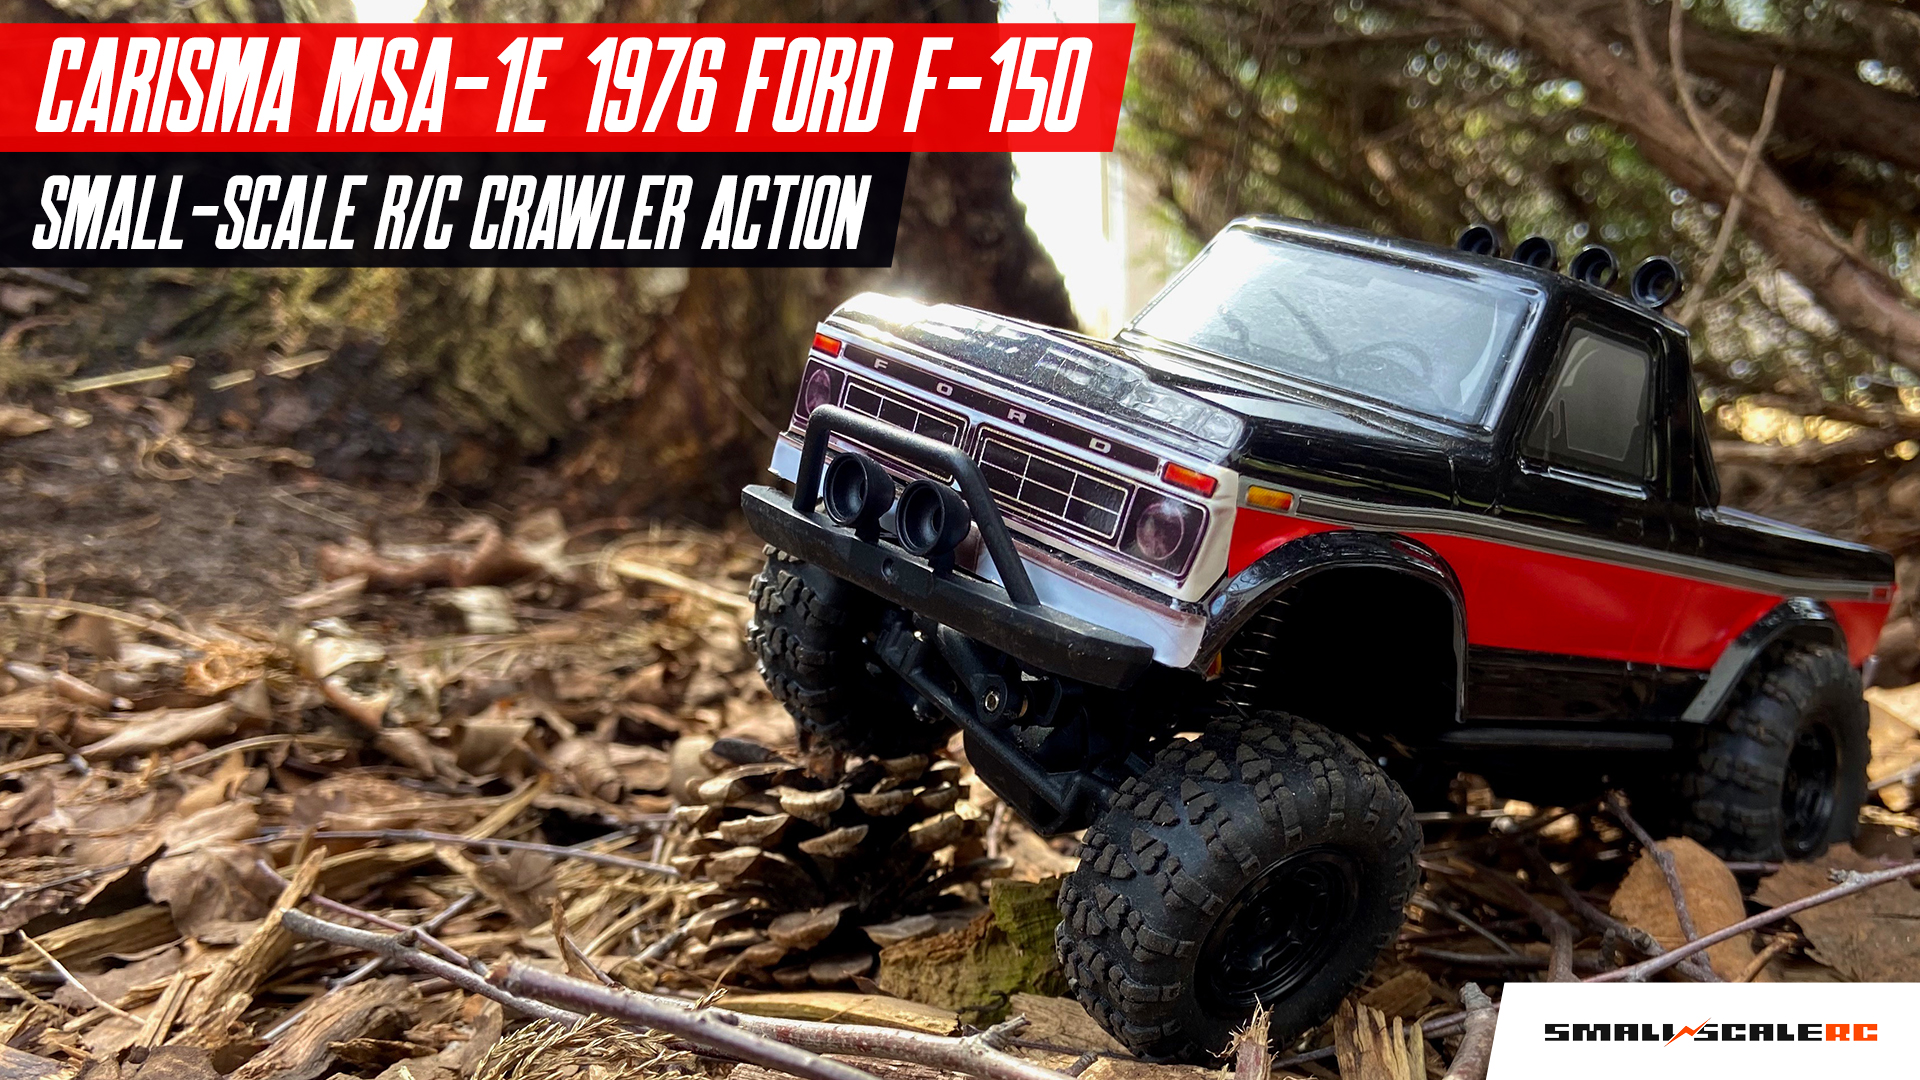 Outdoor Crawling Action with the Carisma Scale Adventure MSA-1E [Video]